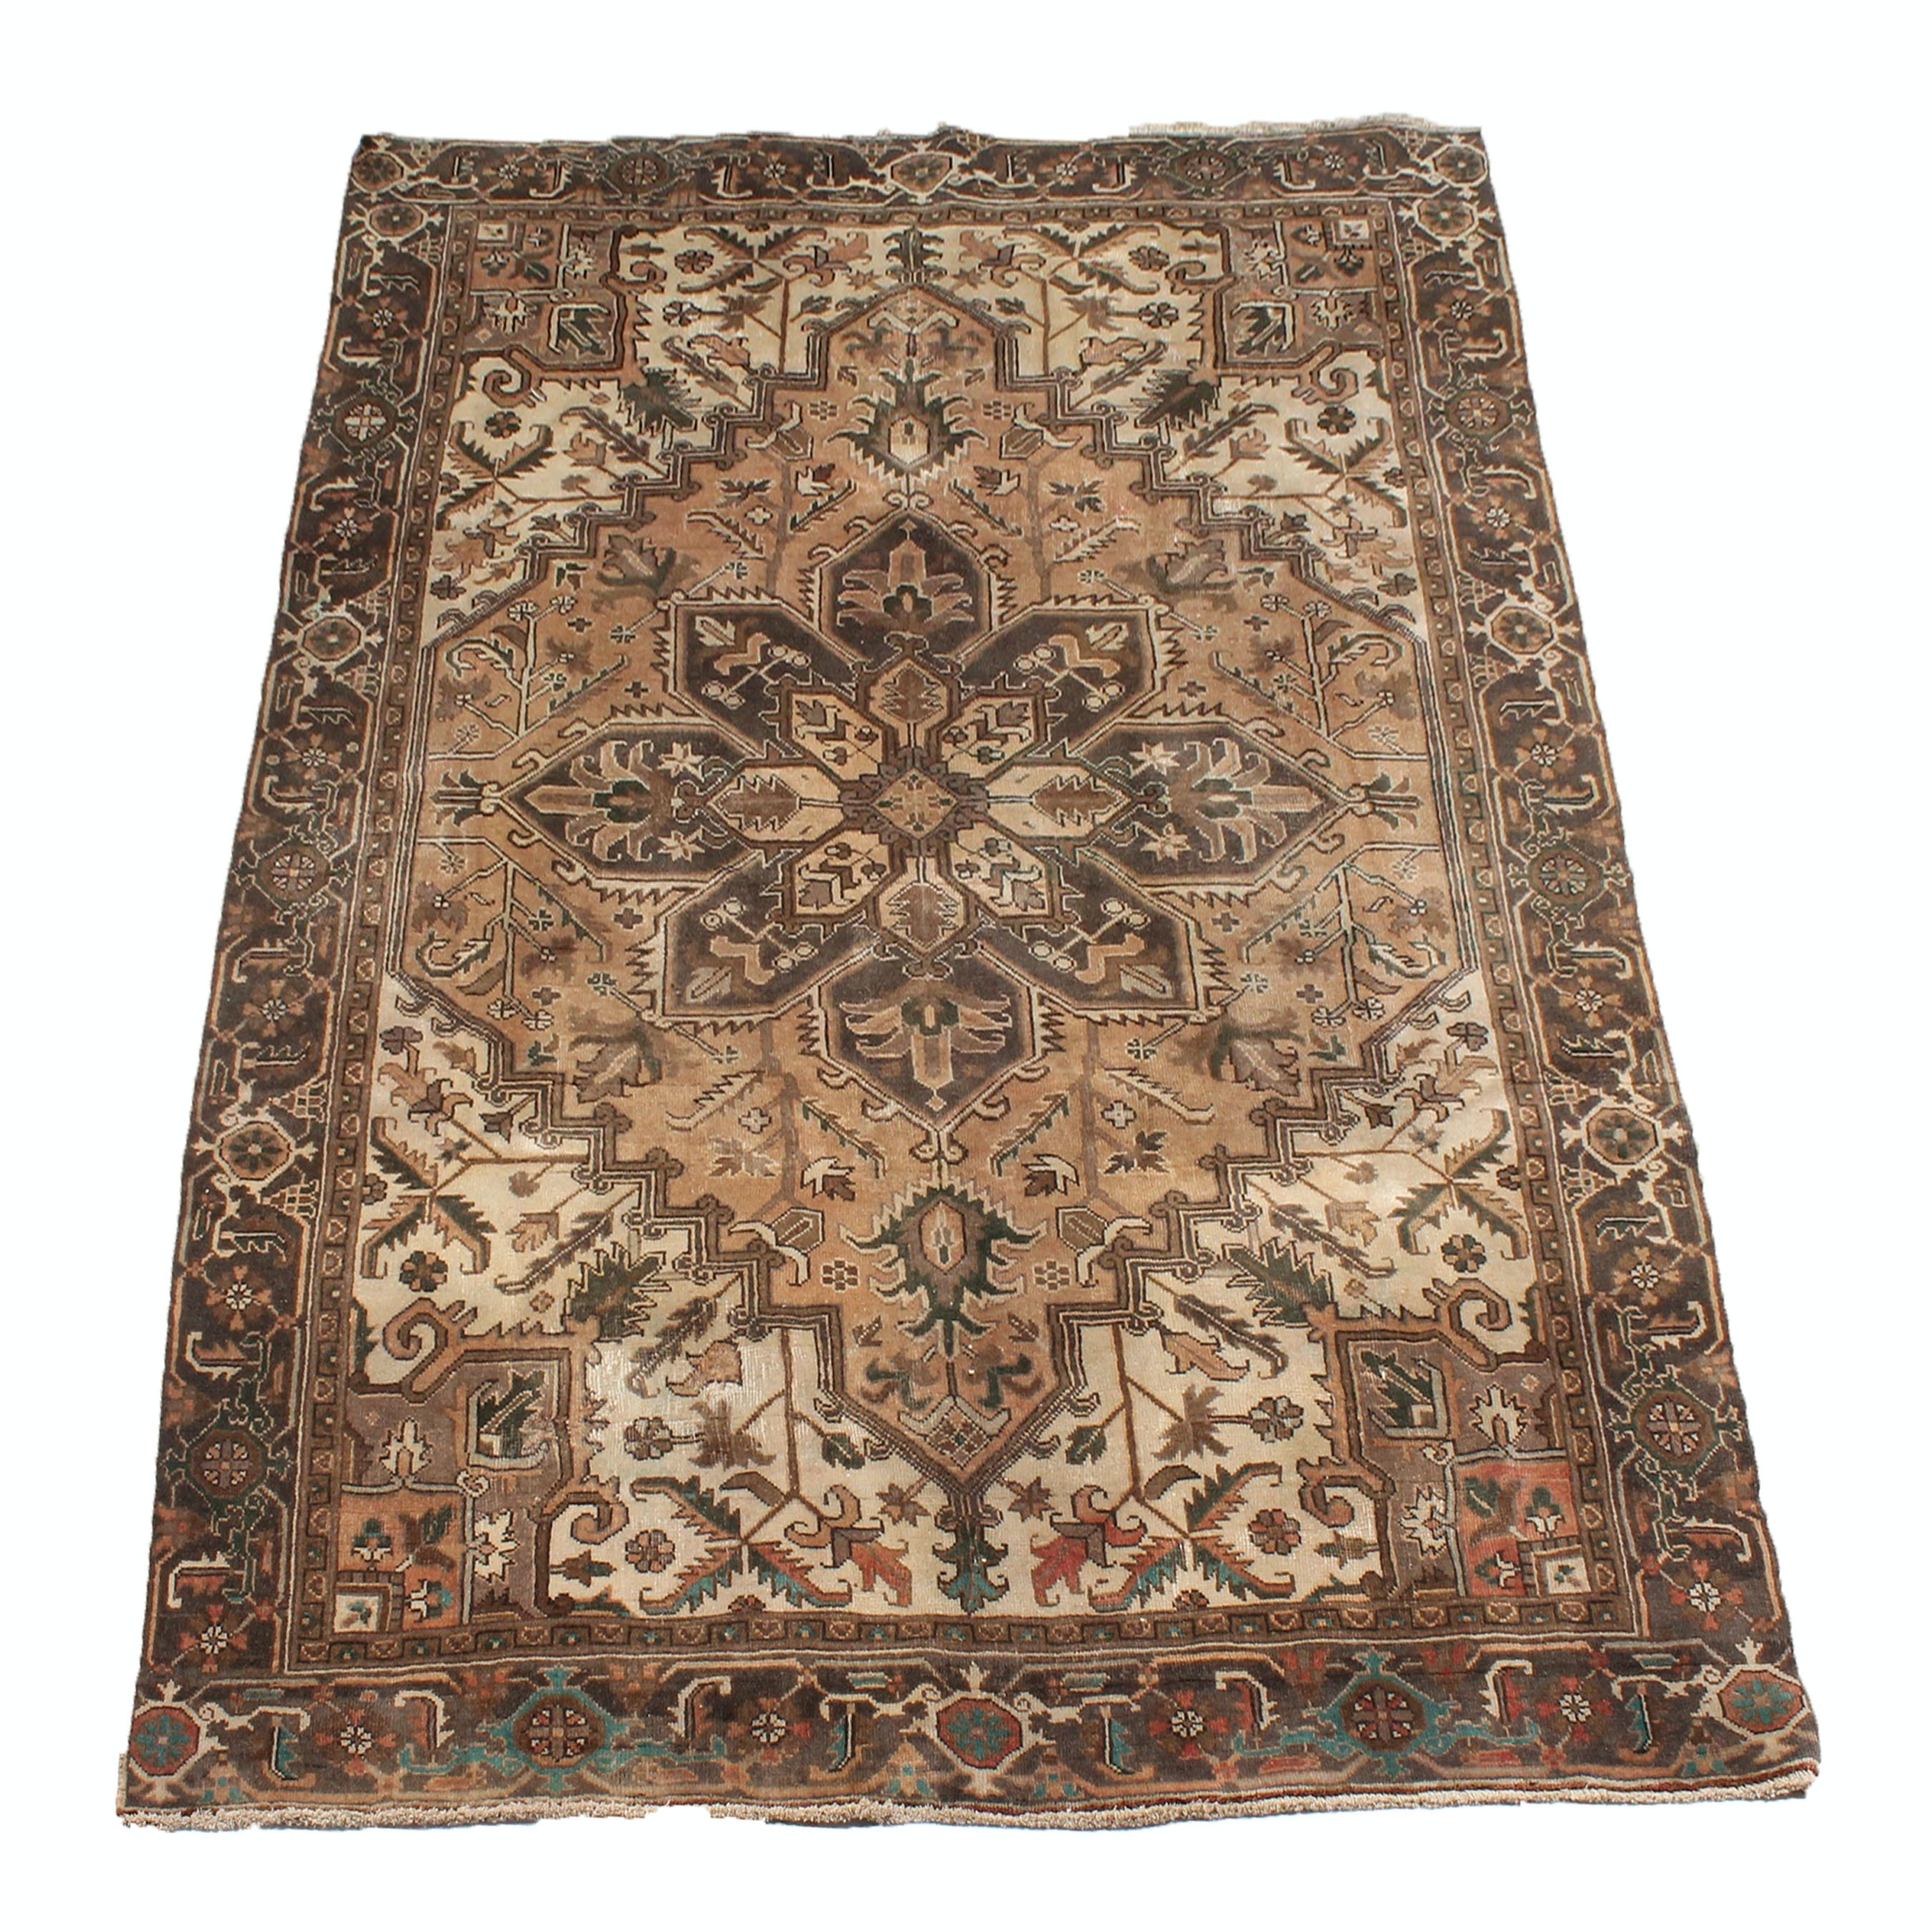 6' x 10' Vintage Hand-Knotted Persian Serapi Heriz Rug